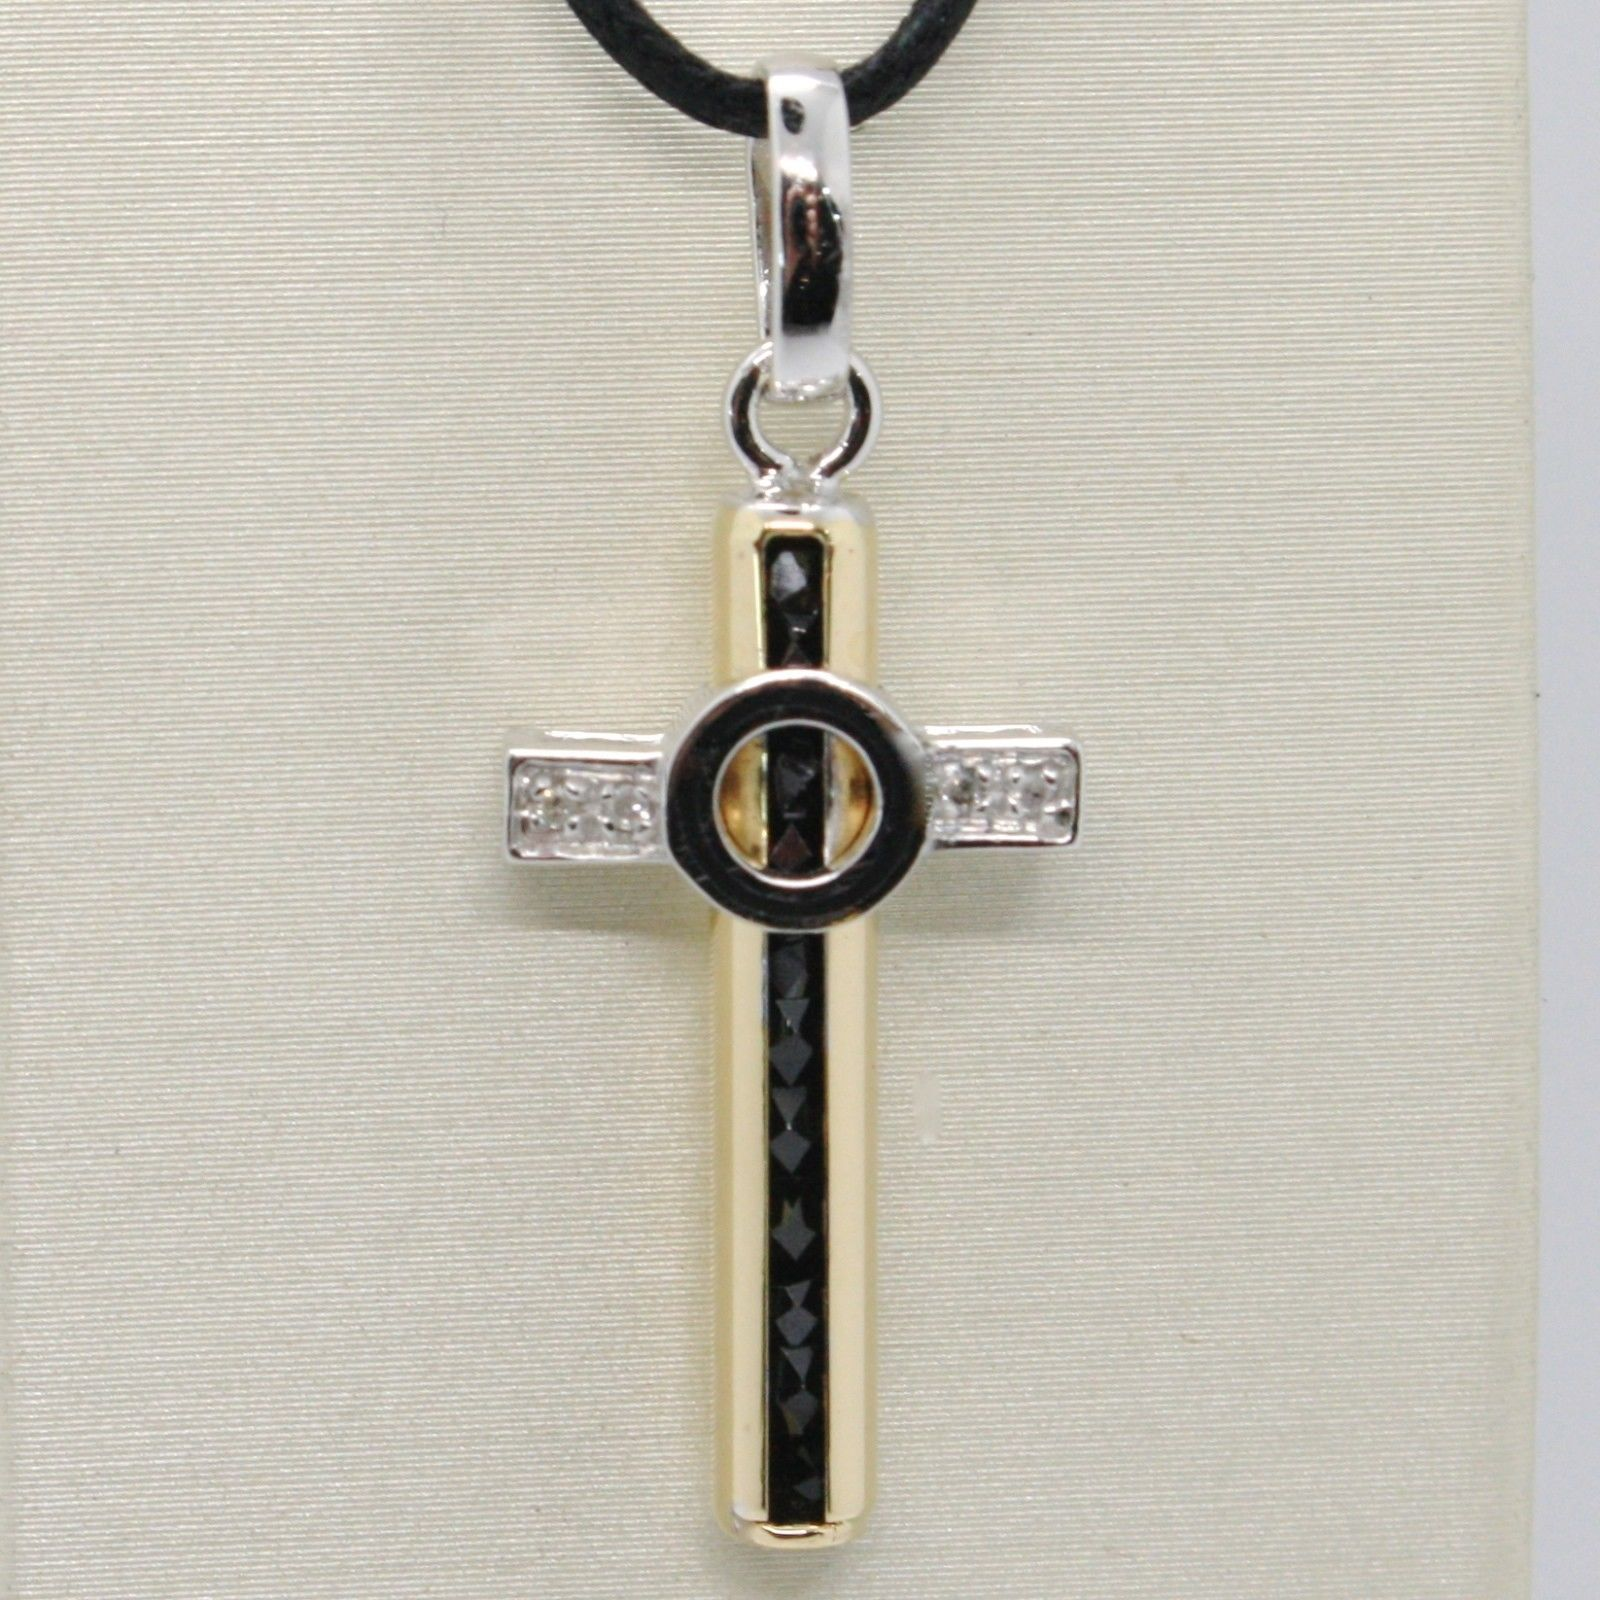 18K WHITE YELLOW GOLD CROSS WITH DIAMOND, BLACK SPINEL, TUBE STYLIZED ITALY MADE